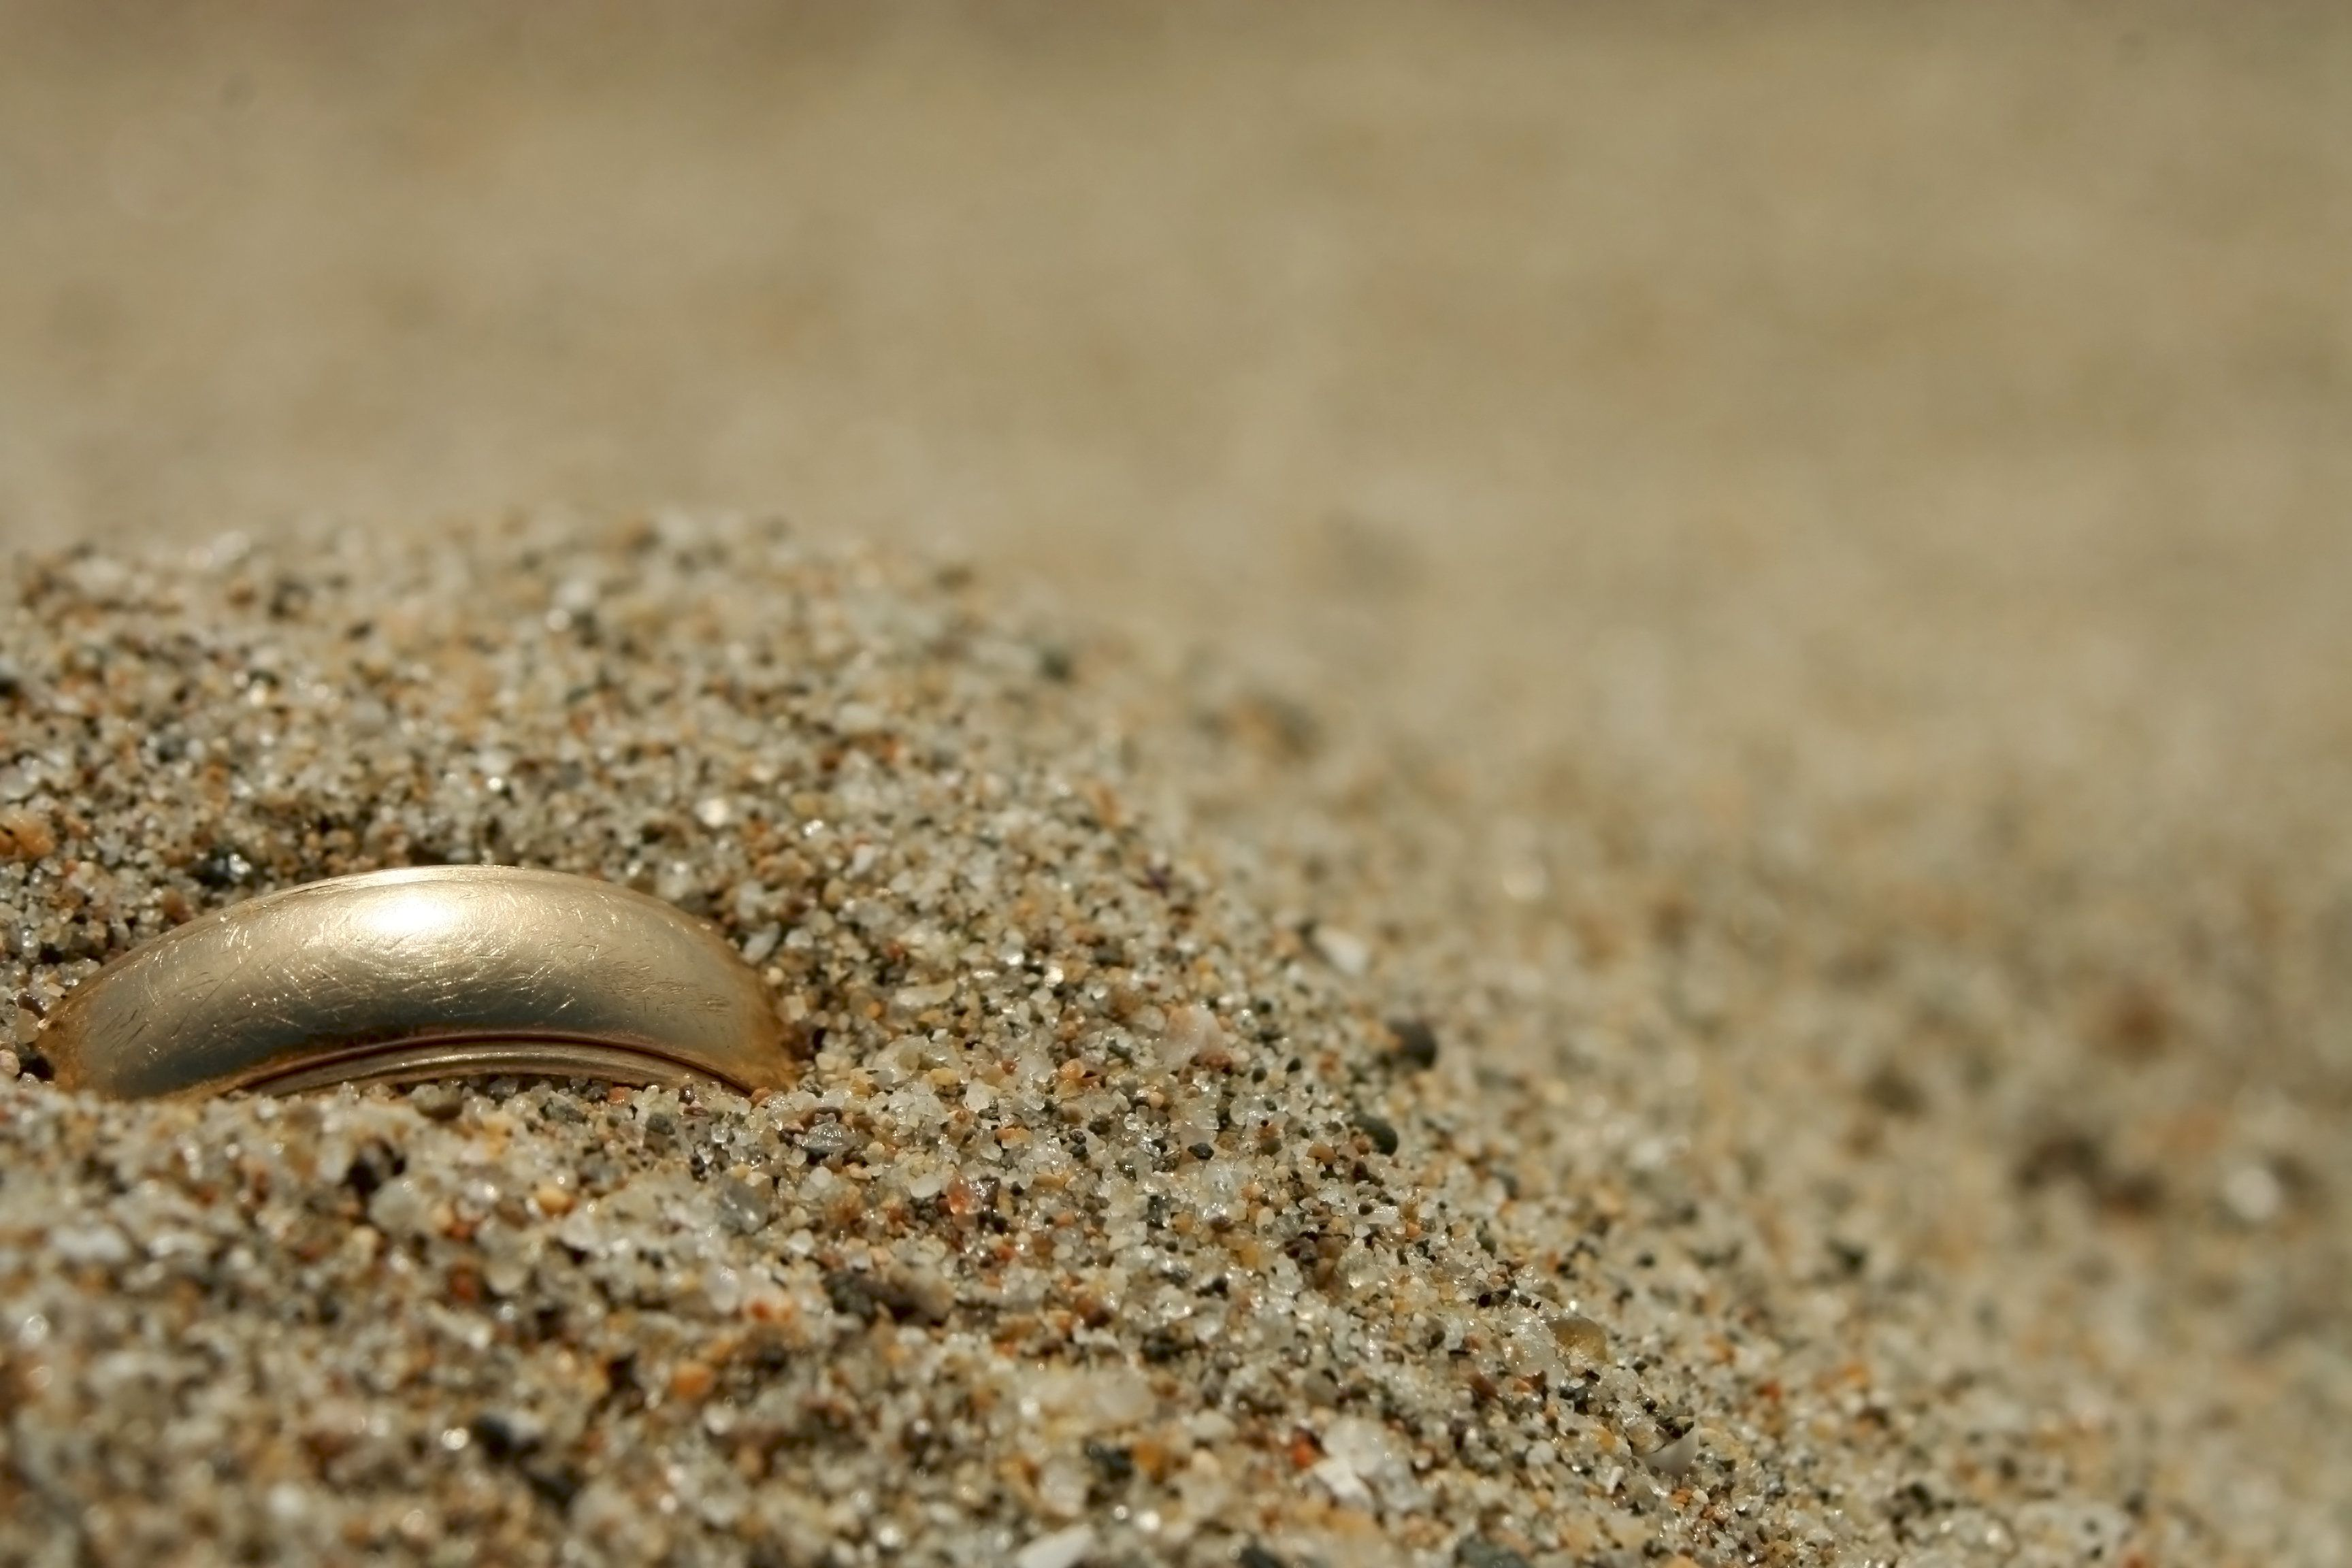 A gold ring lost in the